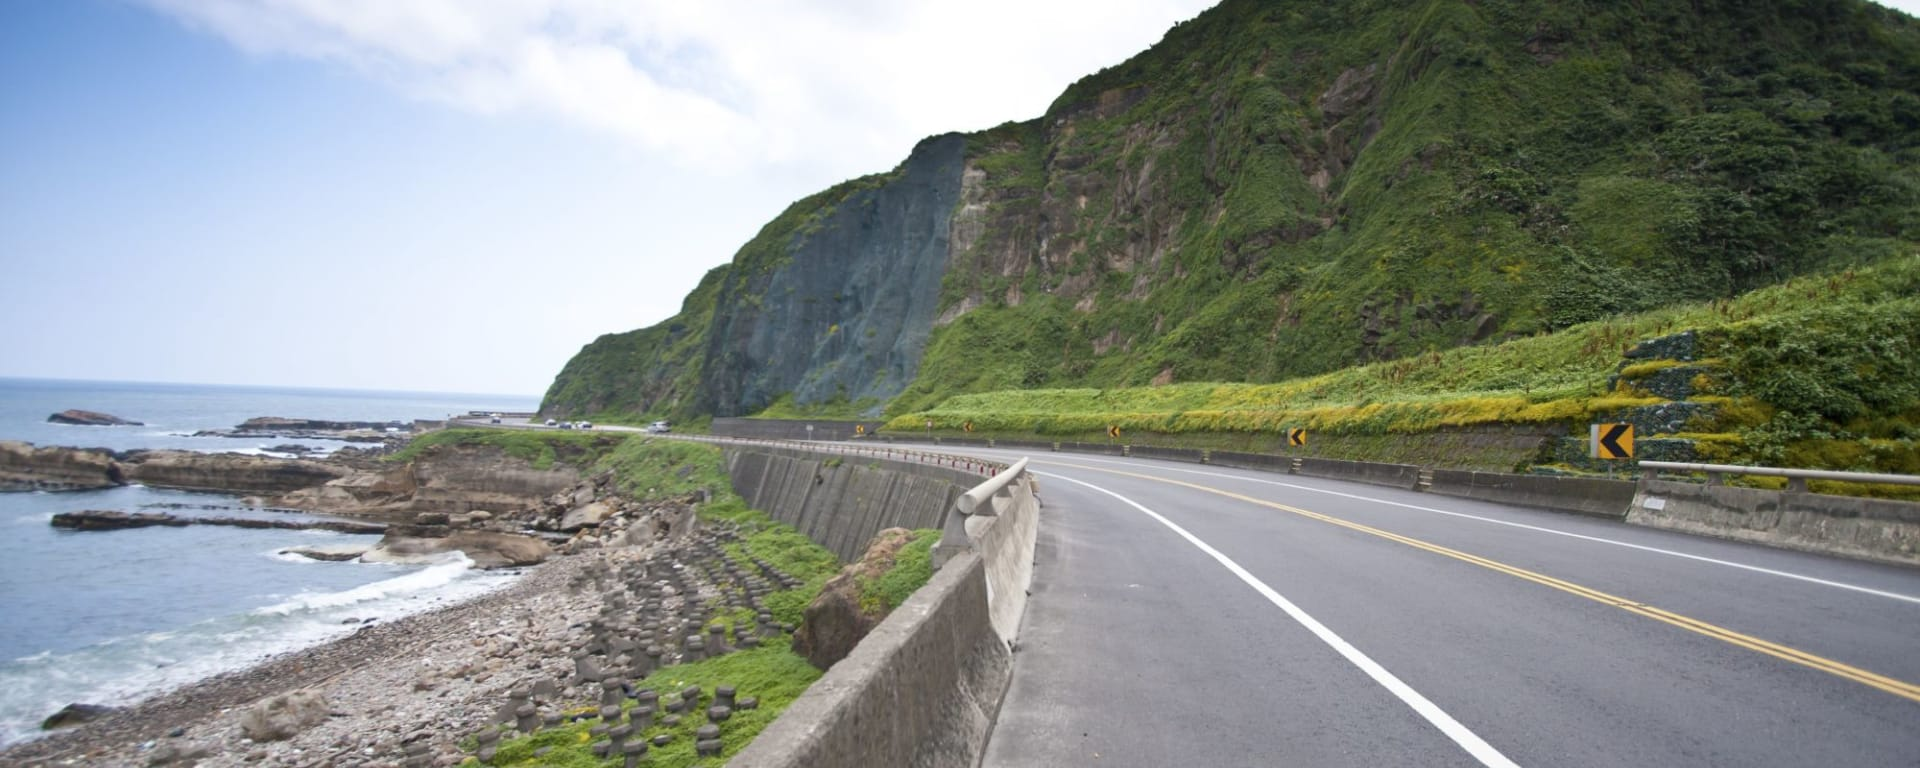 Best of Taiwan ab Taipei: Coastal Road and Sea